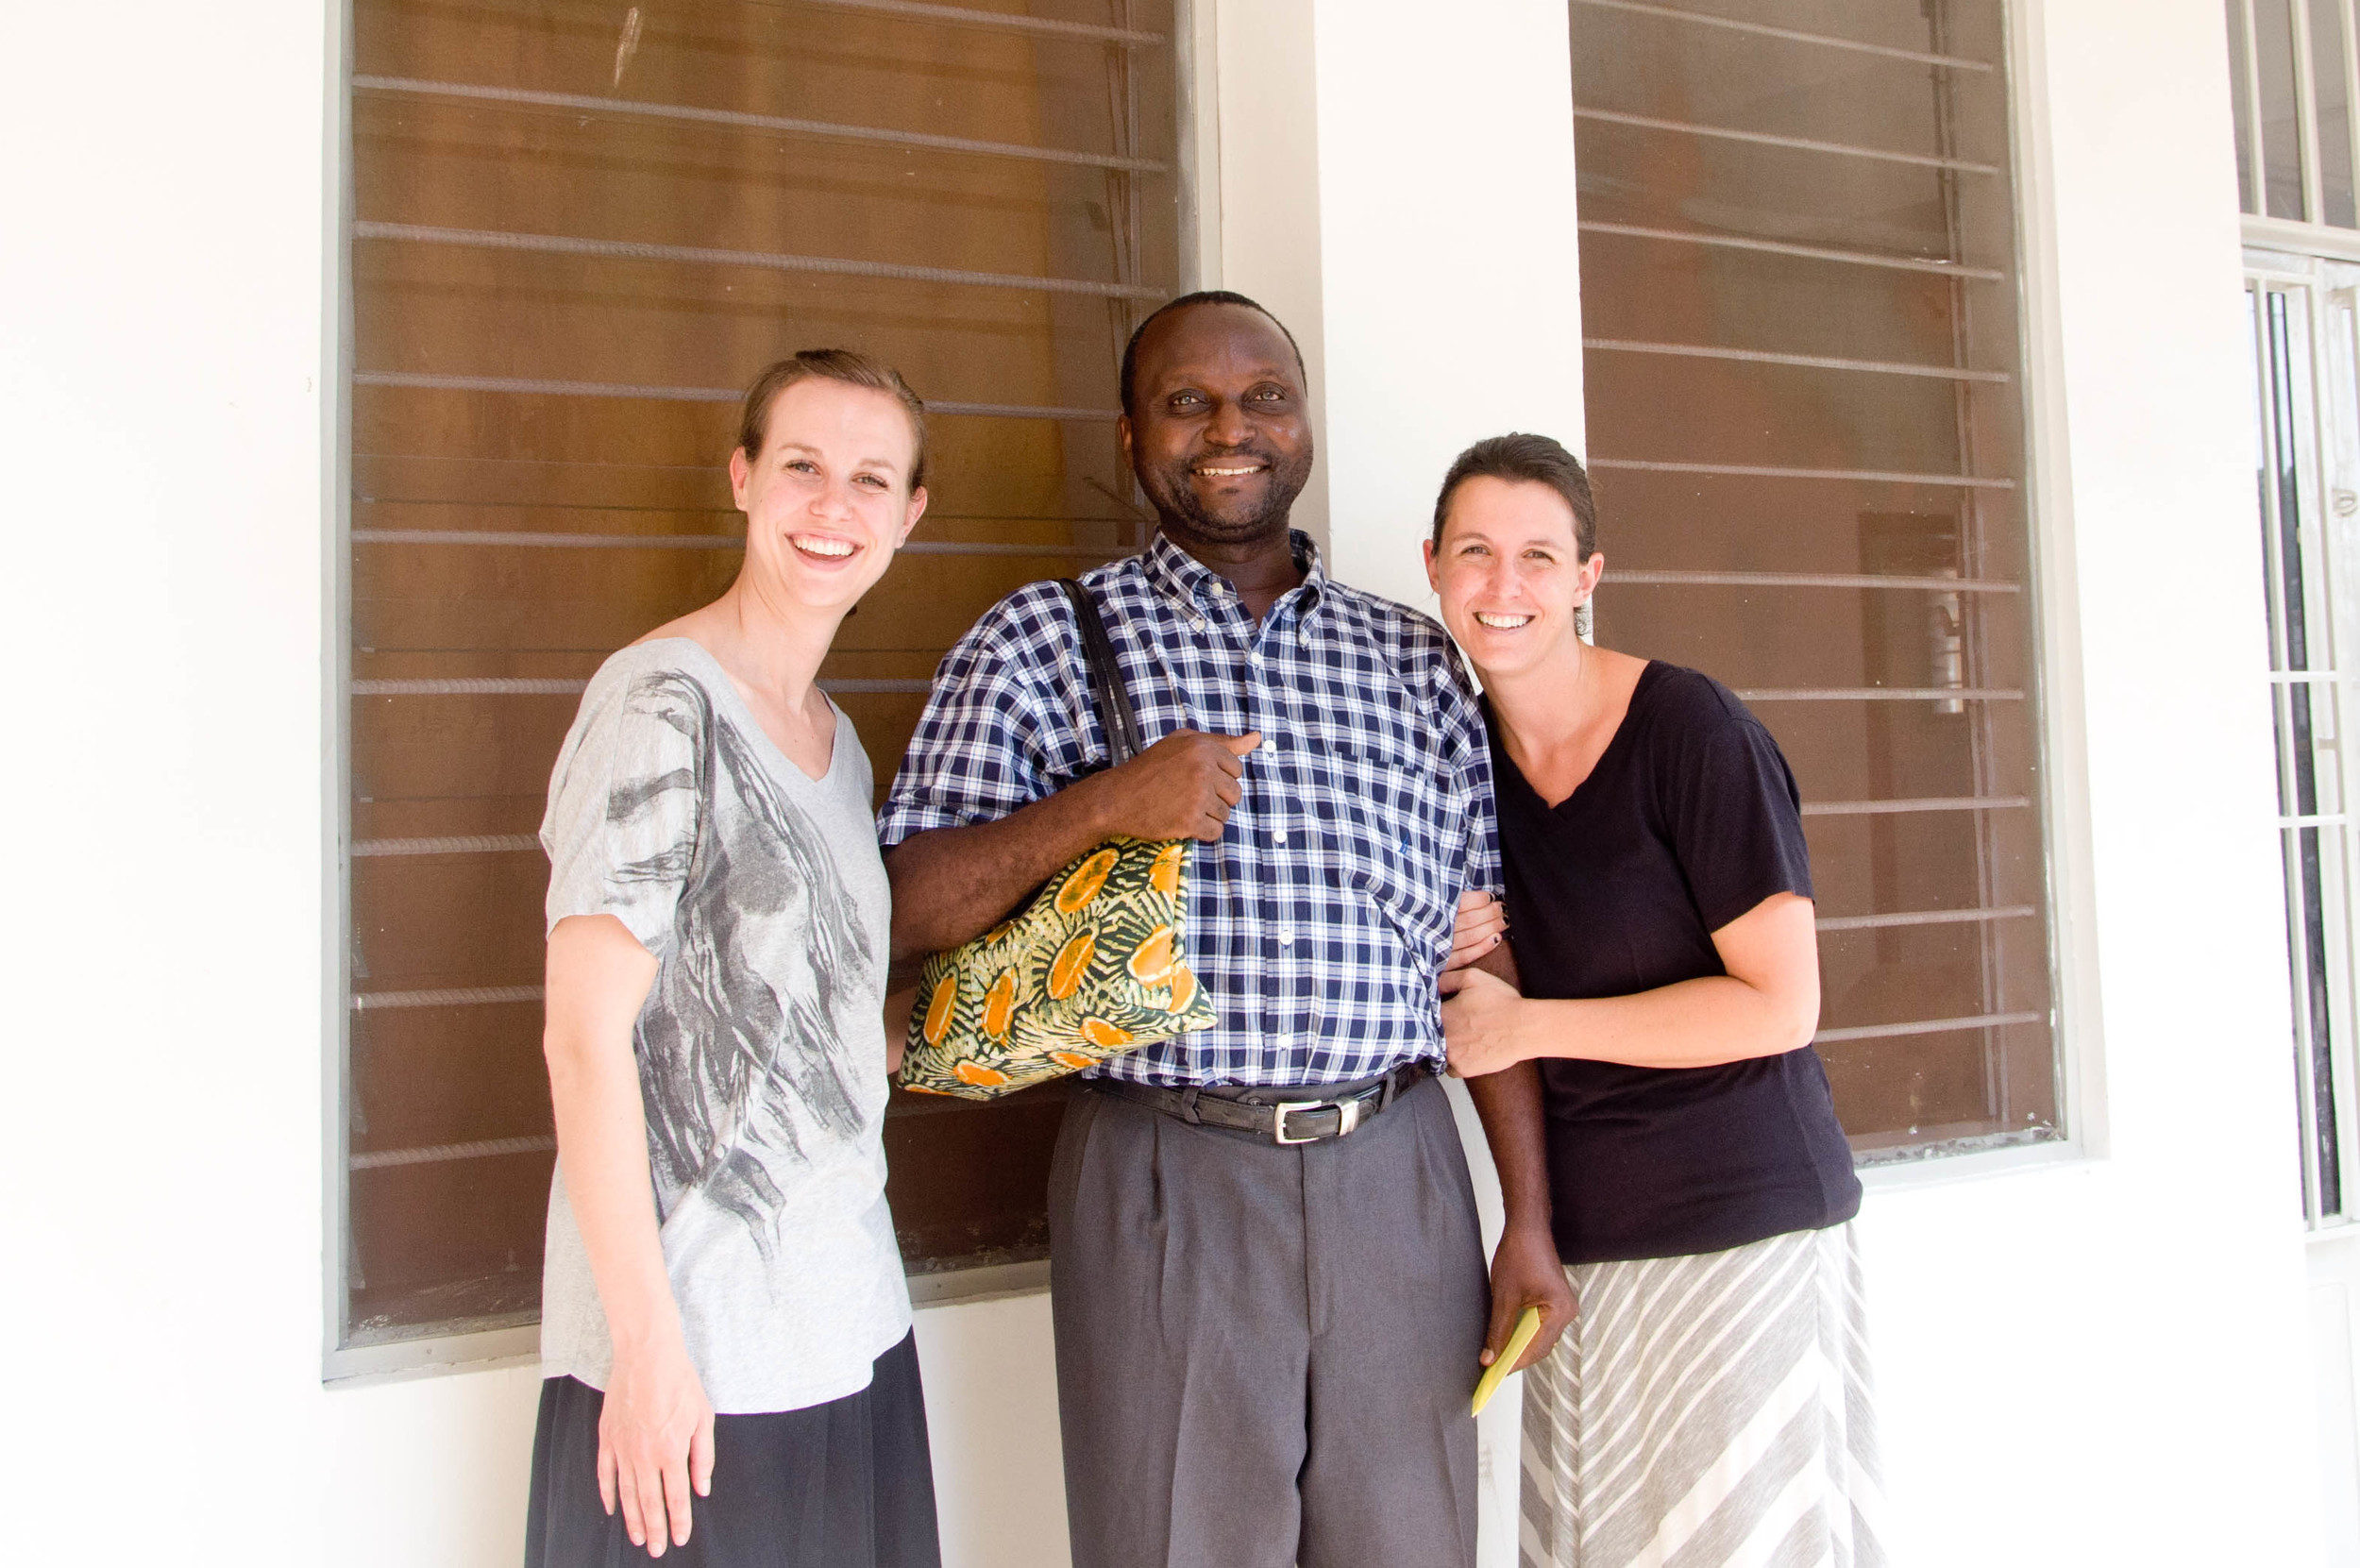 Katie McDaniel, of the Love More Foundation, Dr. Jerry Kindomba, Giving Back to Africa Program Manager, and Danielle Anderson, of DRC Adoption Services.